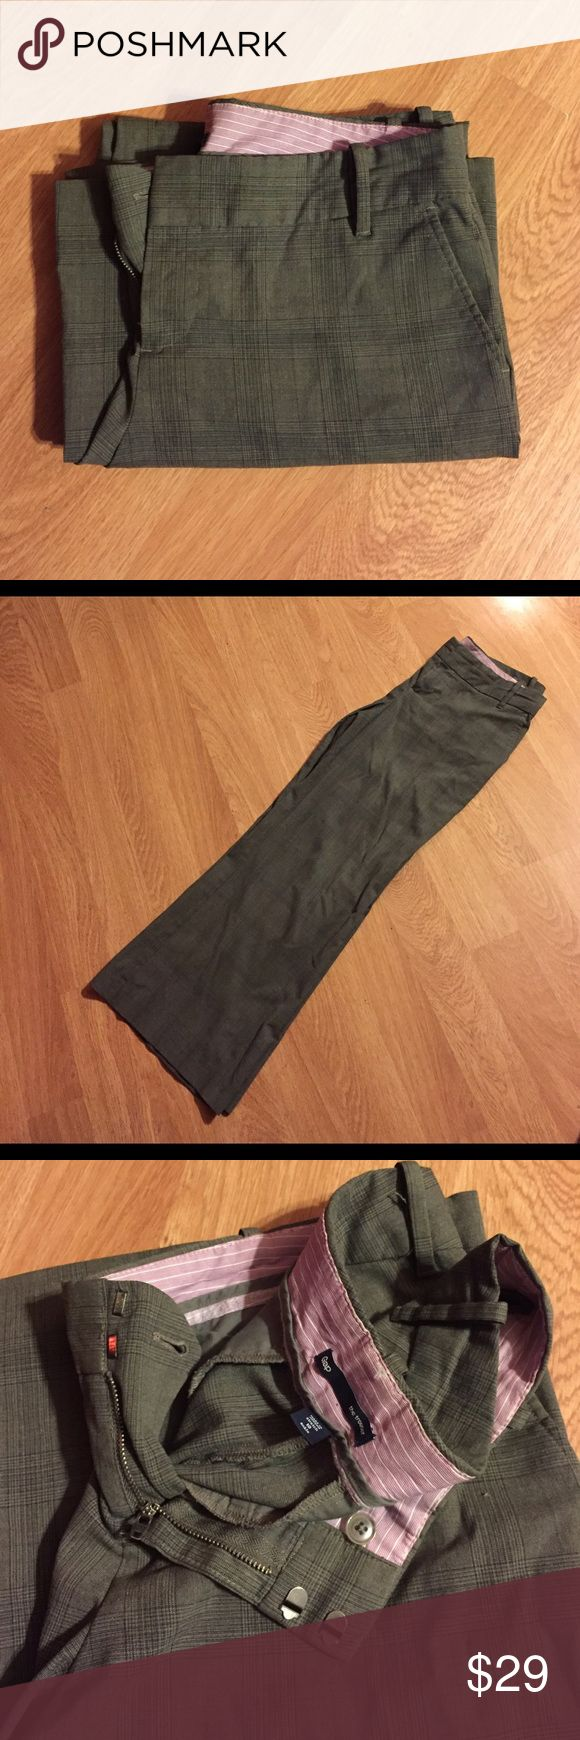 Gap Trousers Gap Wide Leg Trousers.  Dark grey plaid print, size 10 ankle.  These are gently used, but like new condition. GAP Pants Trousers